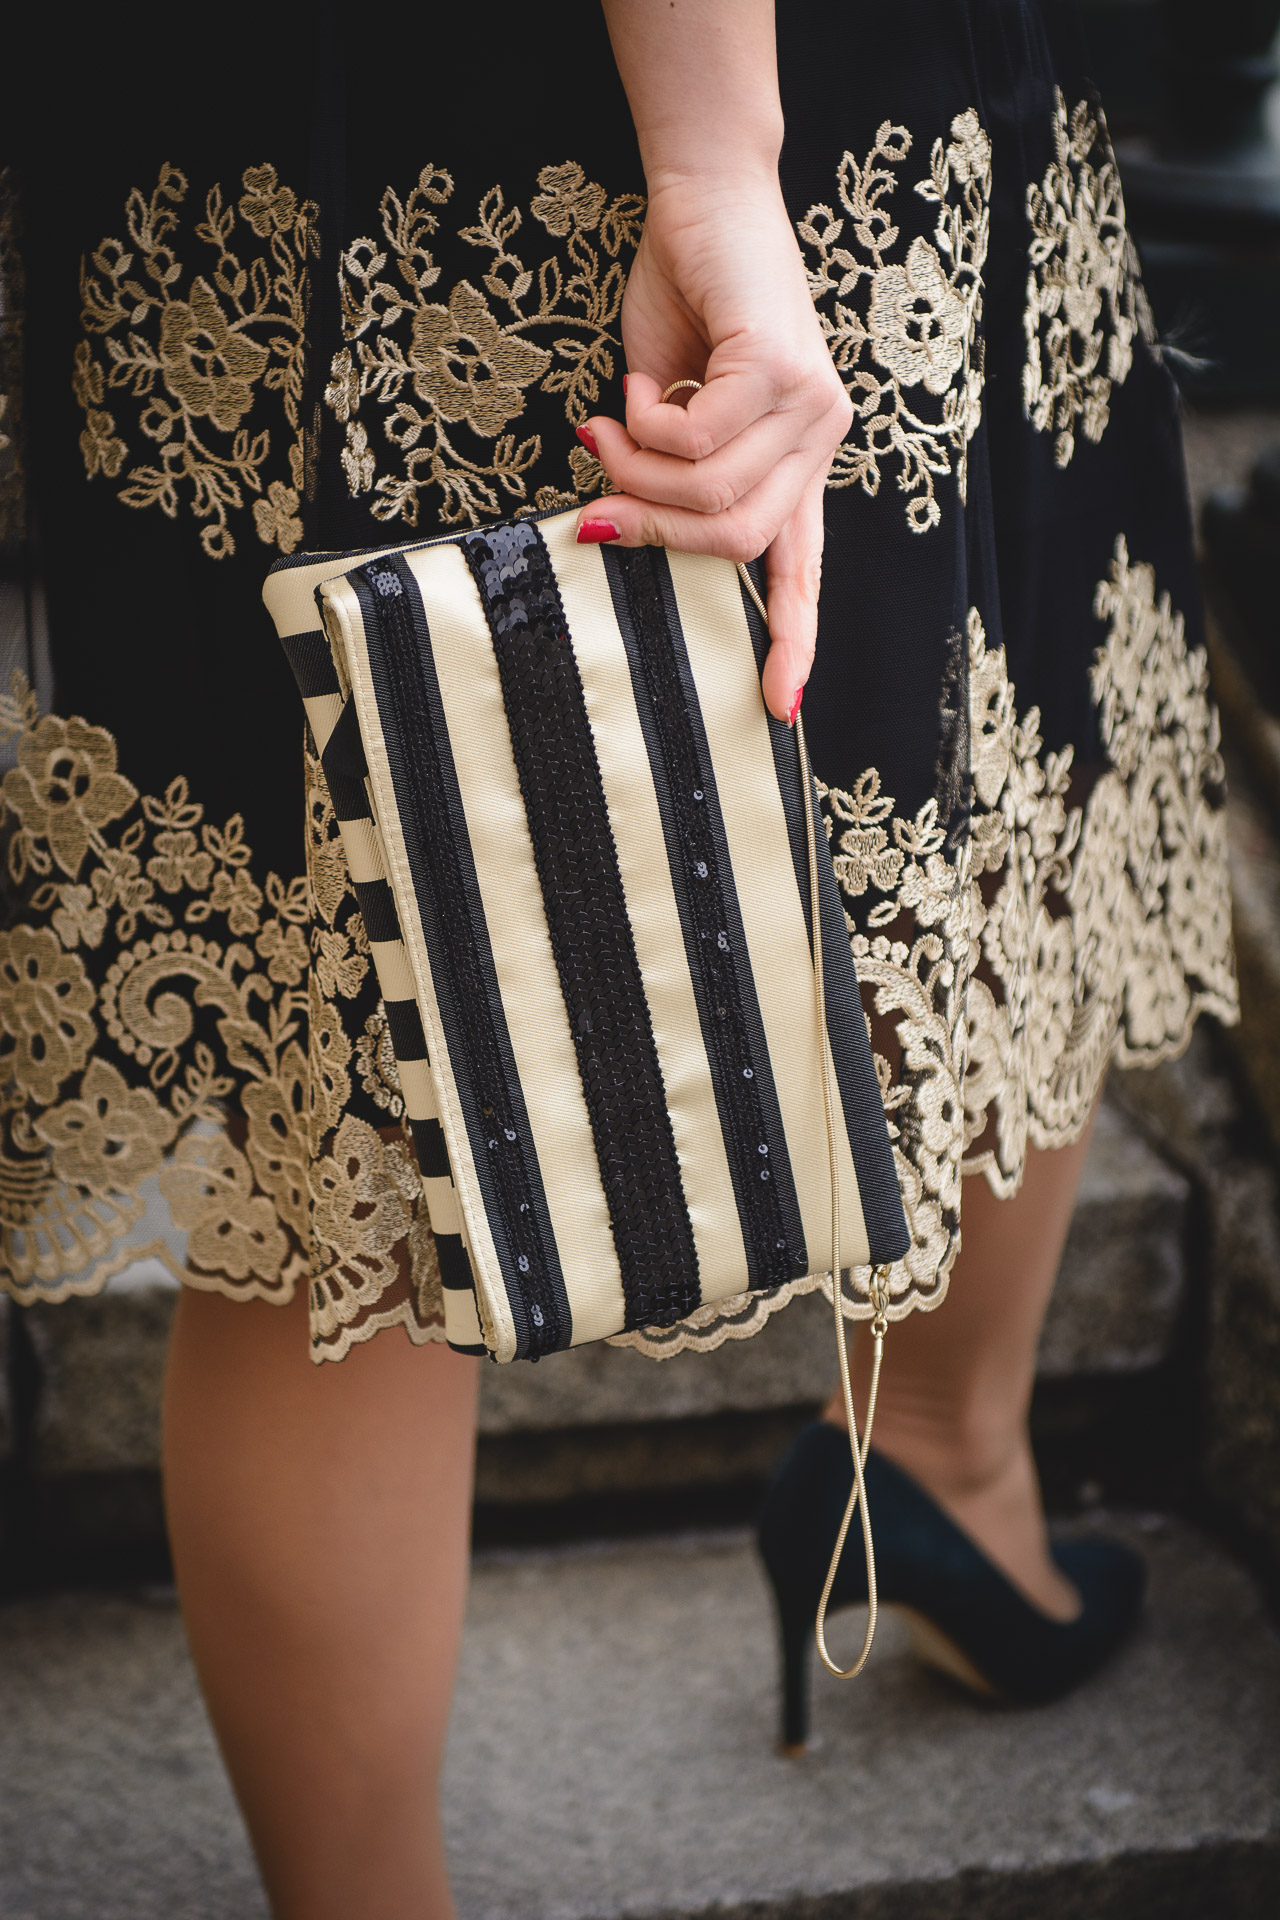 Pennyblack clutch bag